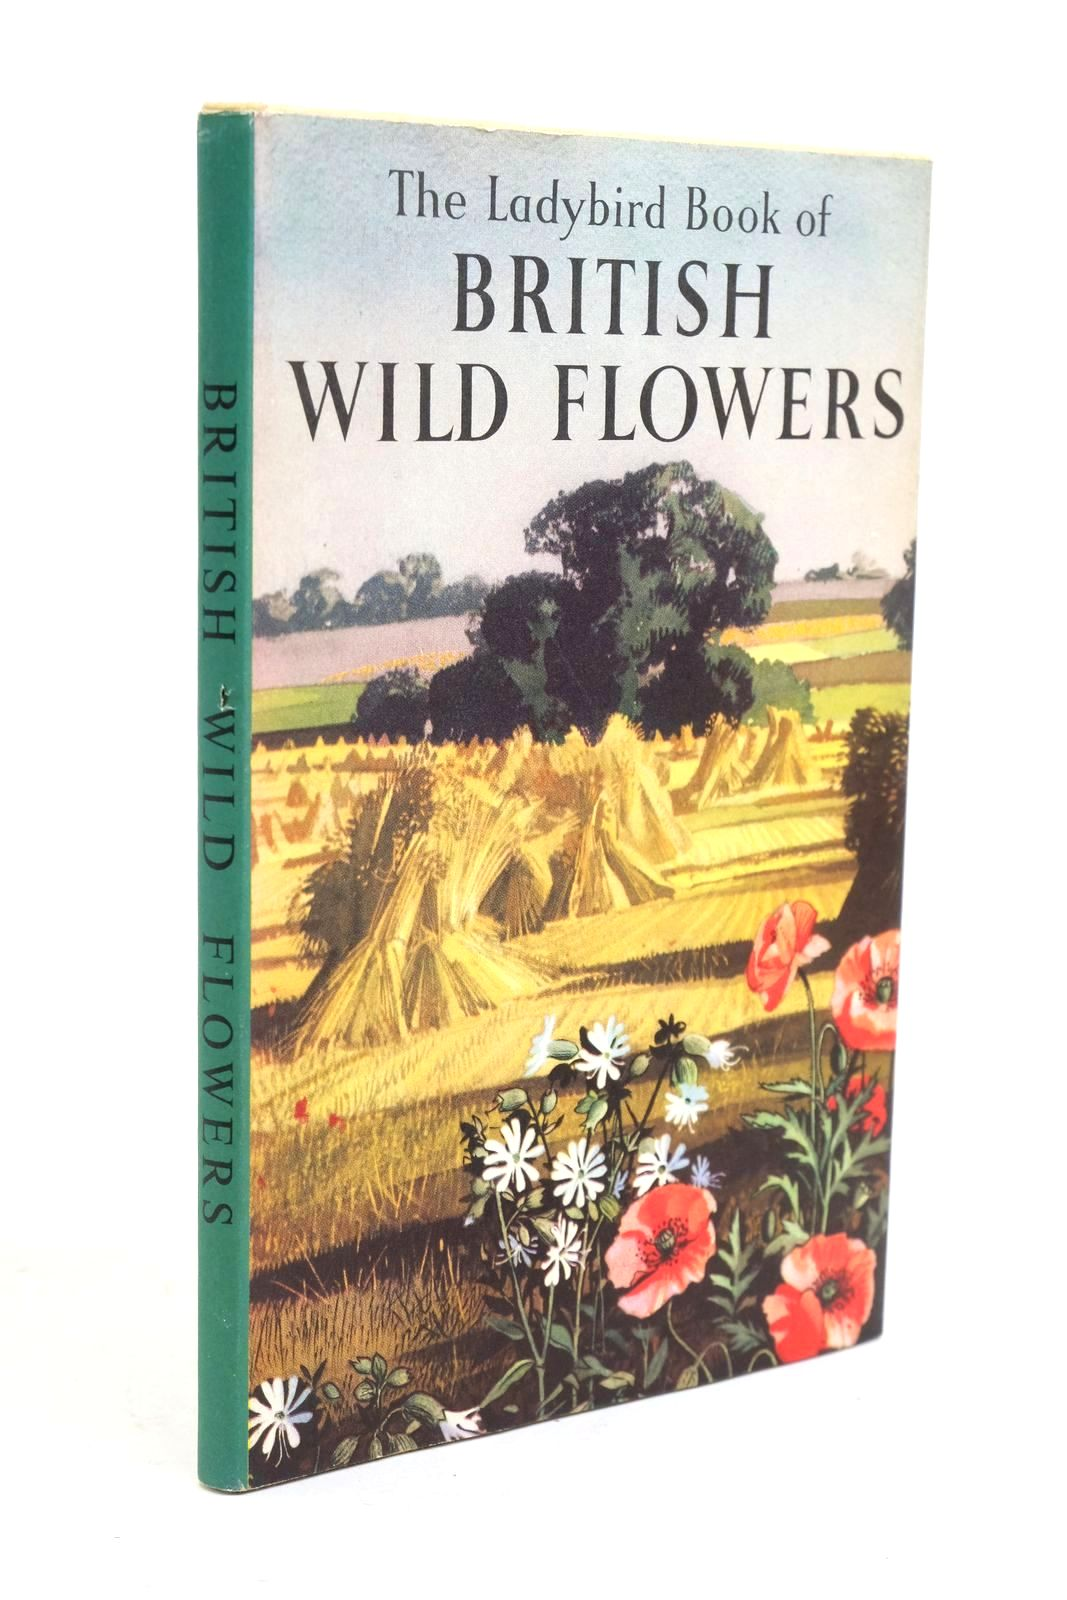 Photo of THE LADYBIRD BOOK OF BRITISH WILD FLOWERS- Stock Number: 1321171